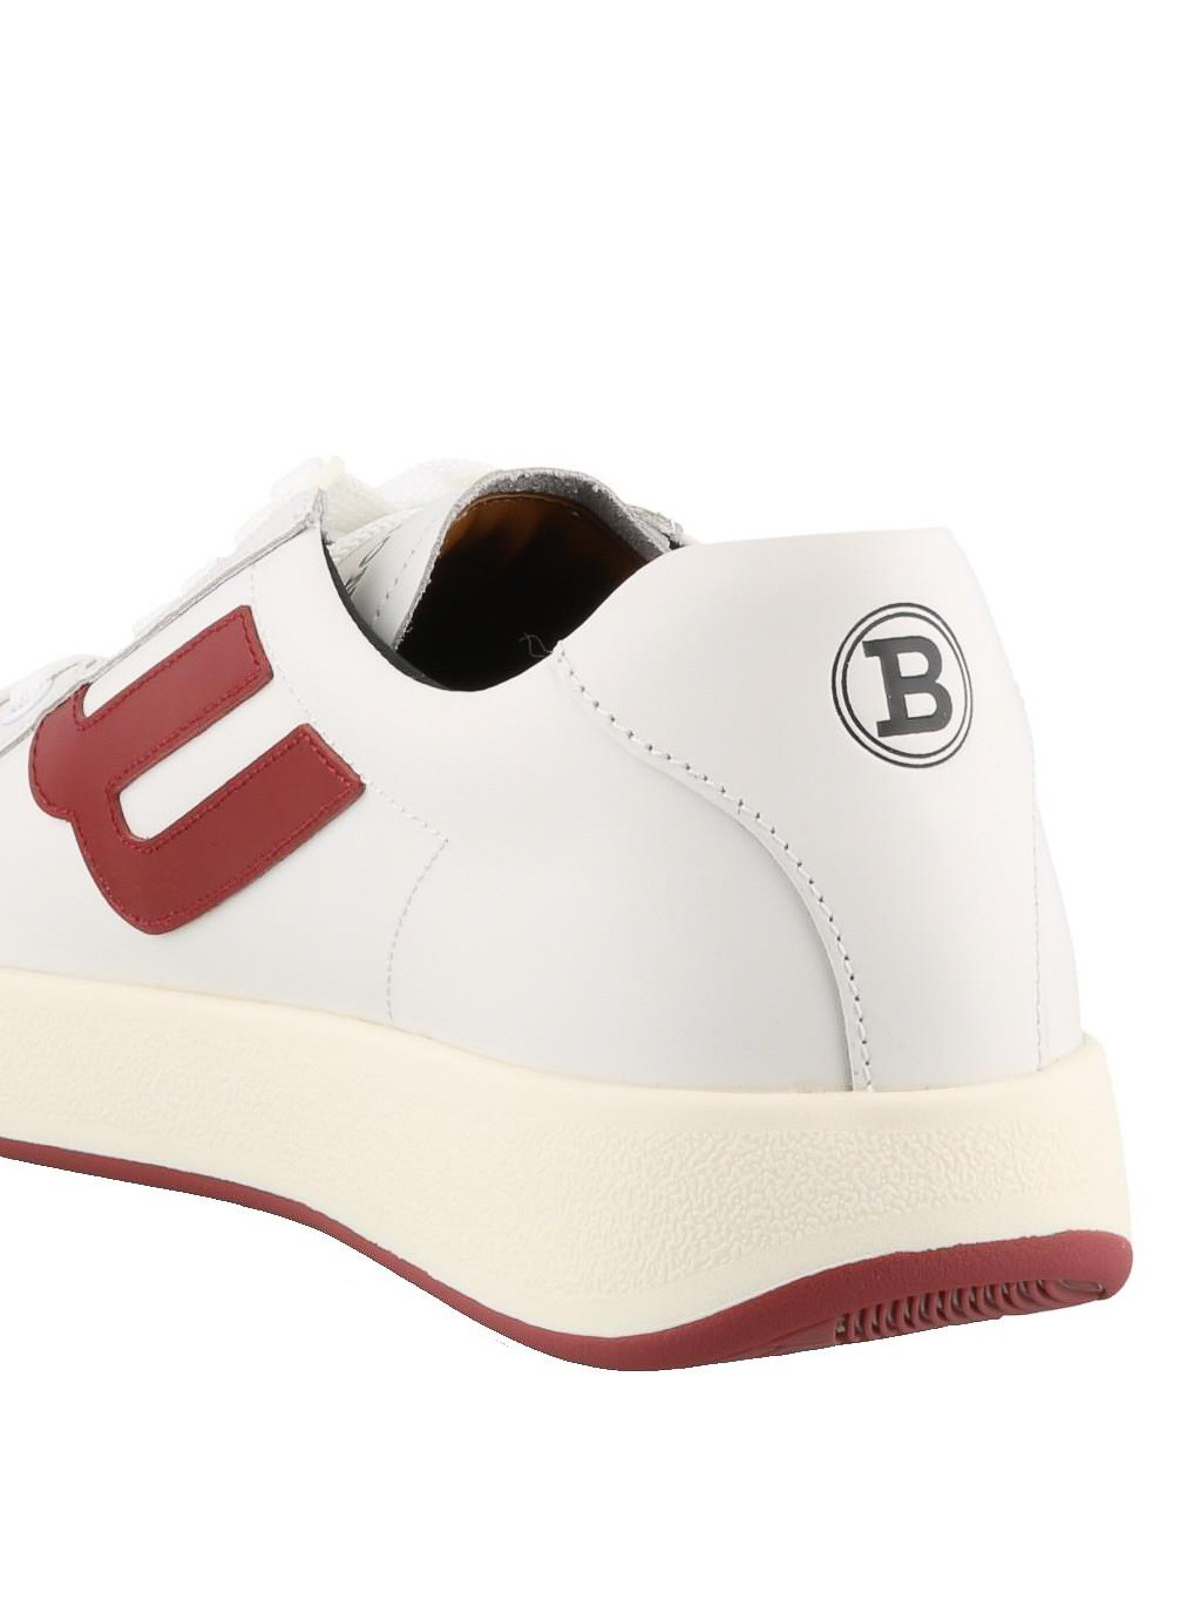 The New Competition leather sneakers